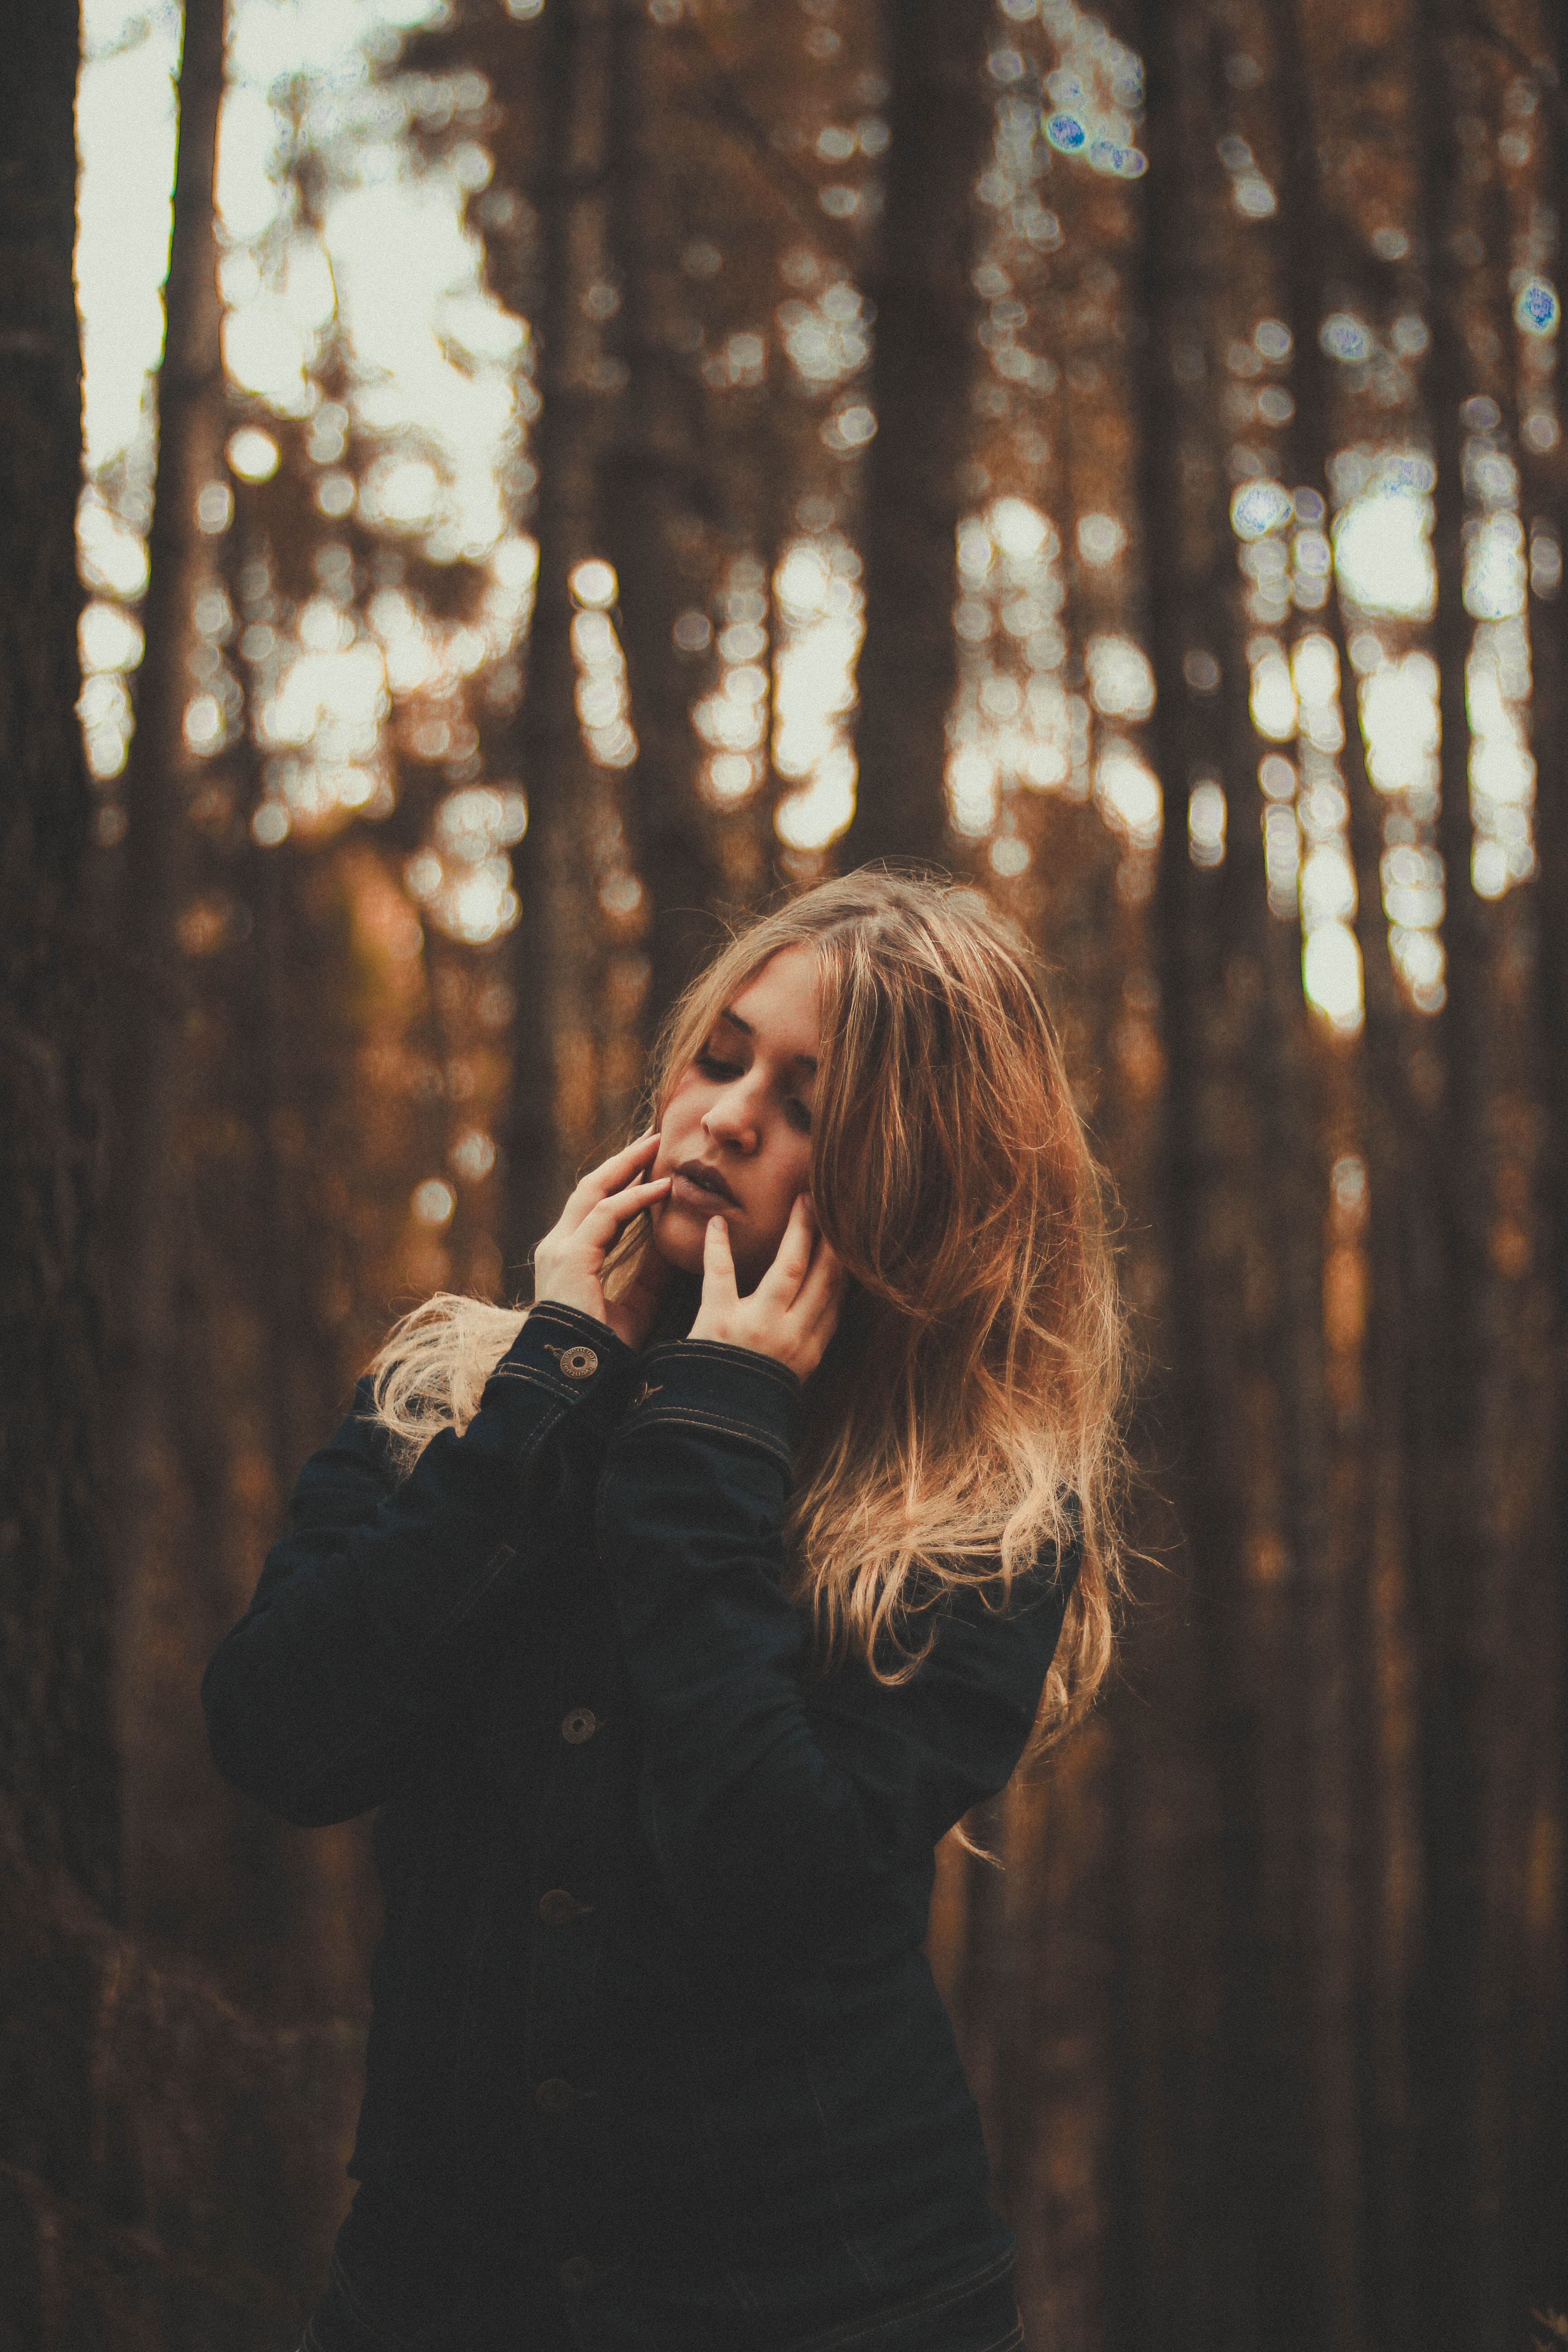 portrait photography of woman wearing black coat surrounded by forest trees during daytime